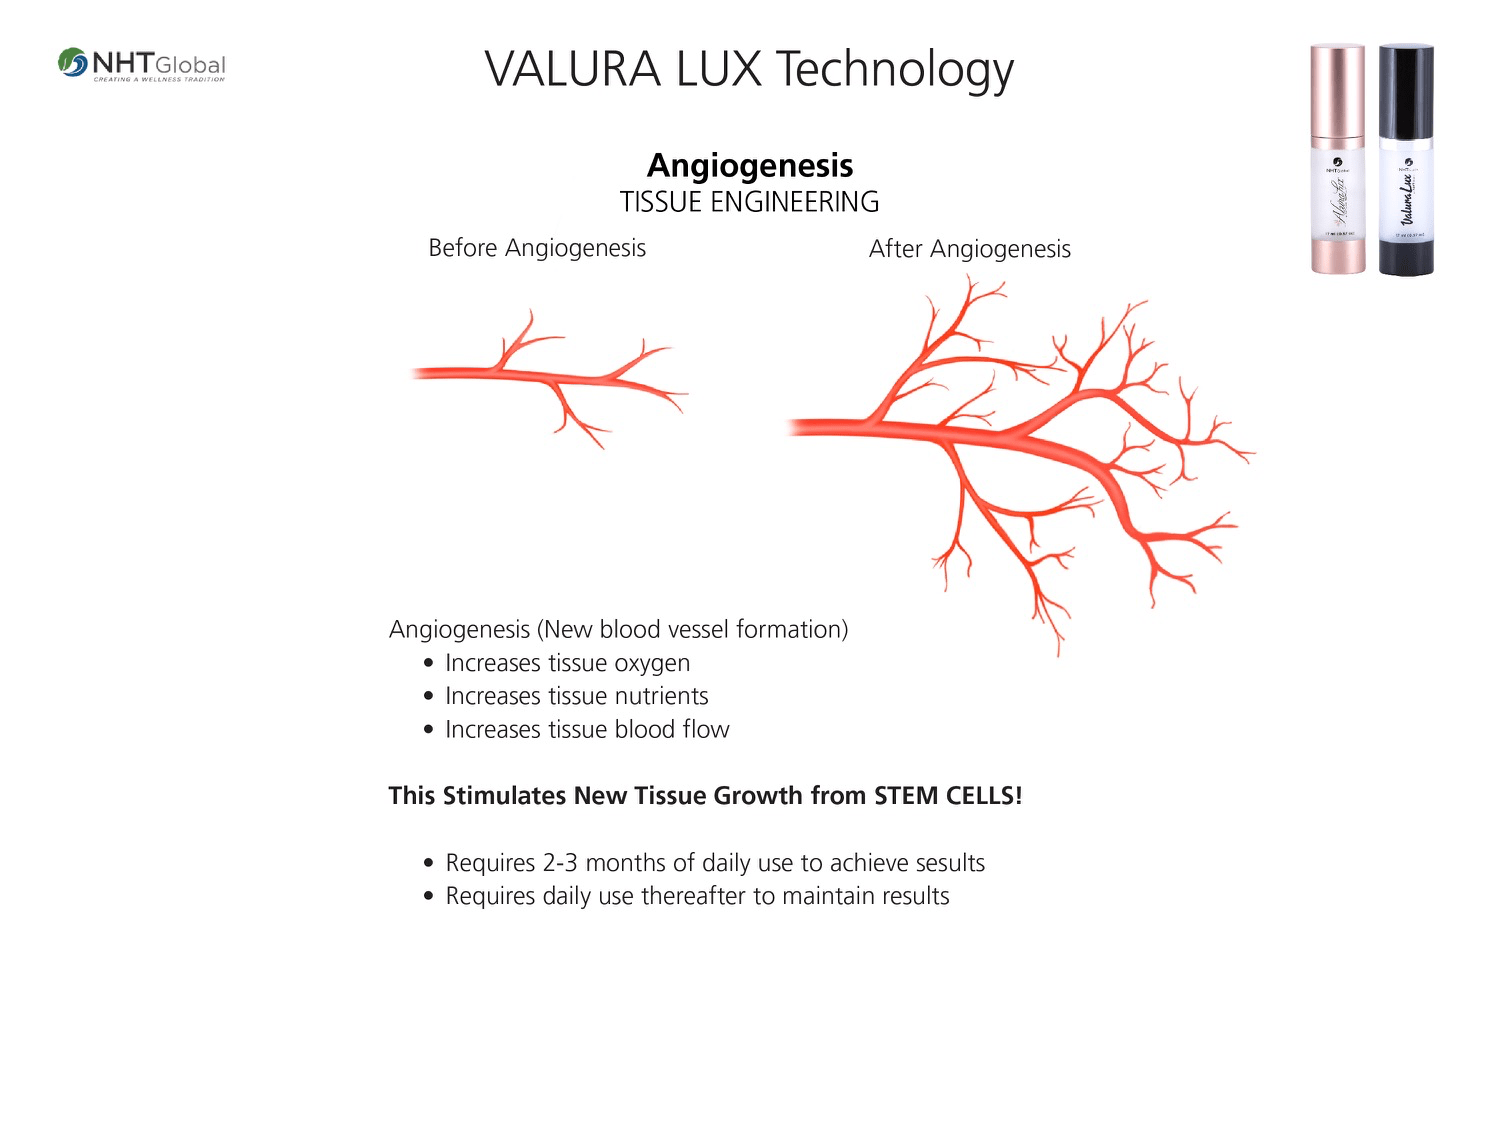 Valura Lux Technology